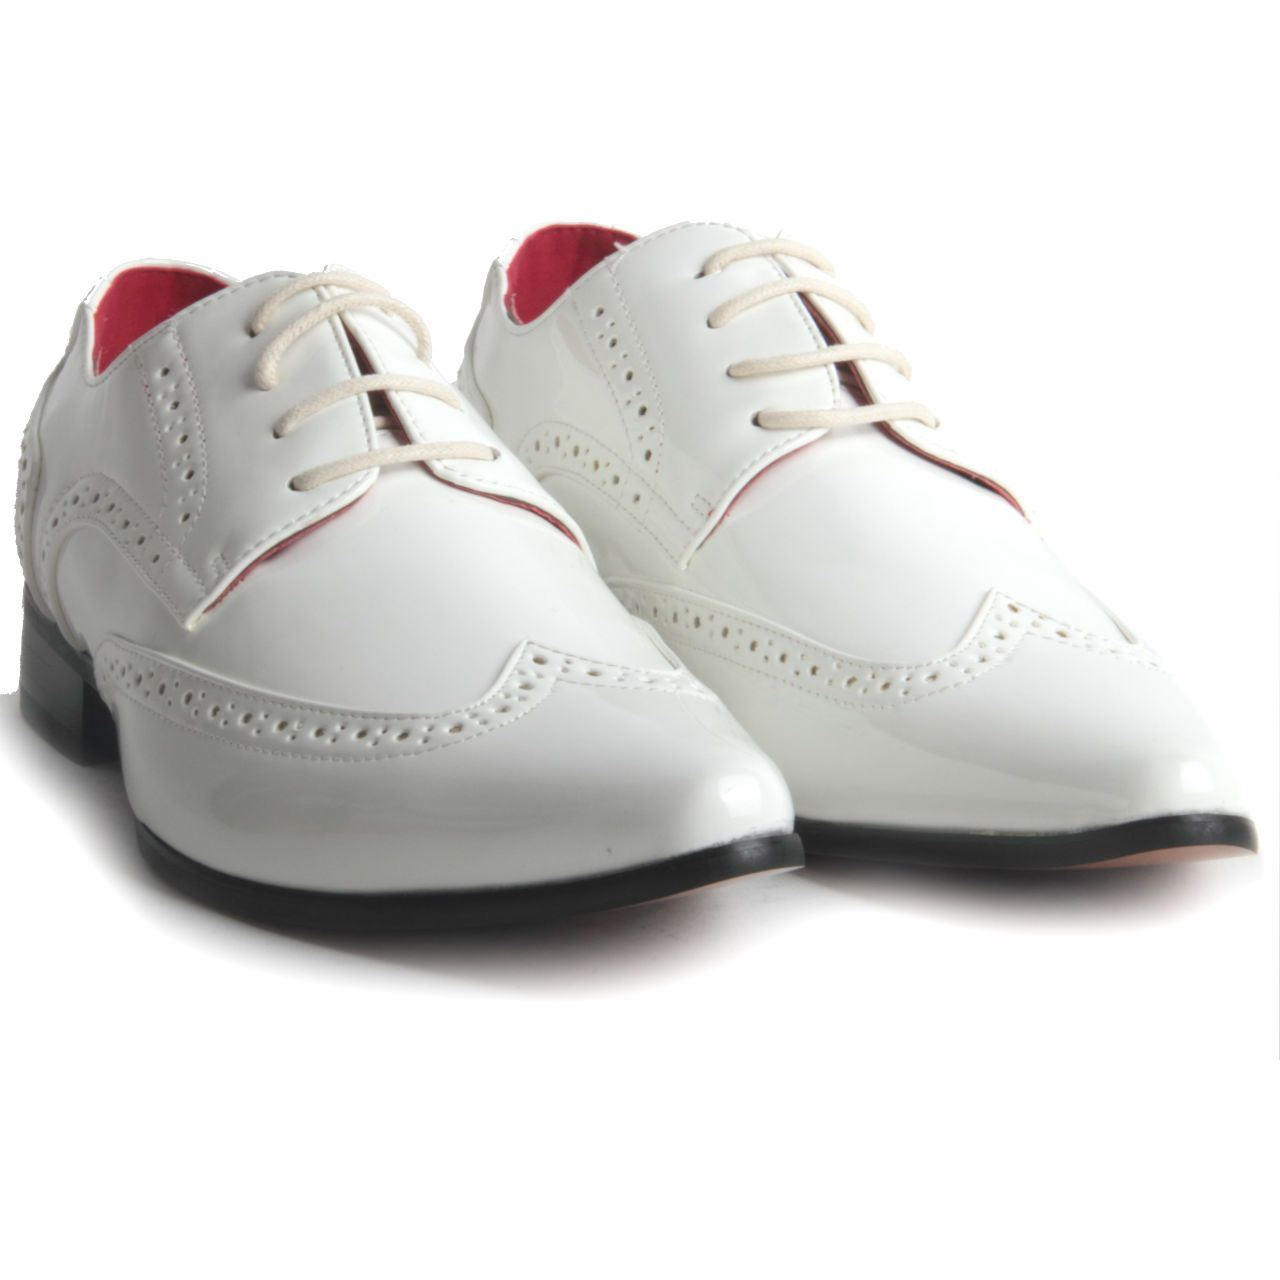 Mens-Smart-Lace-Up-Pointed-Toe-Brogue-Formal-Patent-Leather-Lined-Shoes thumbnail 13